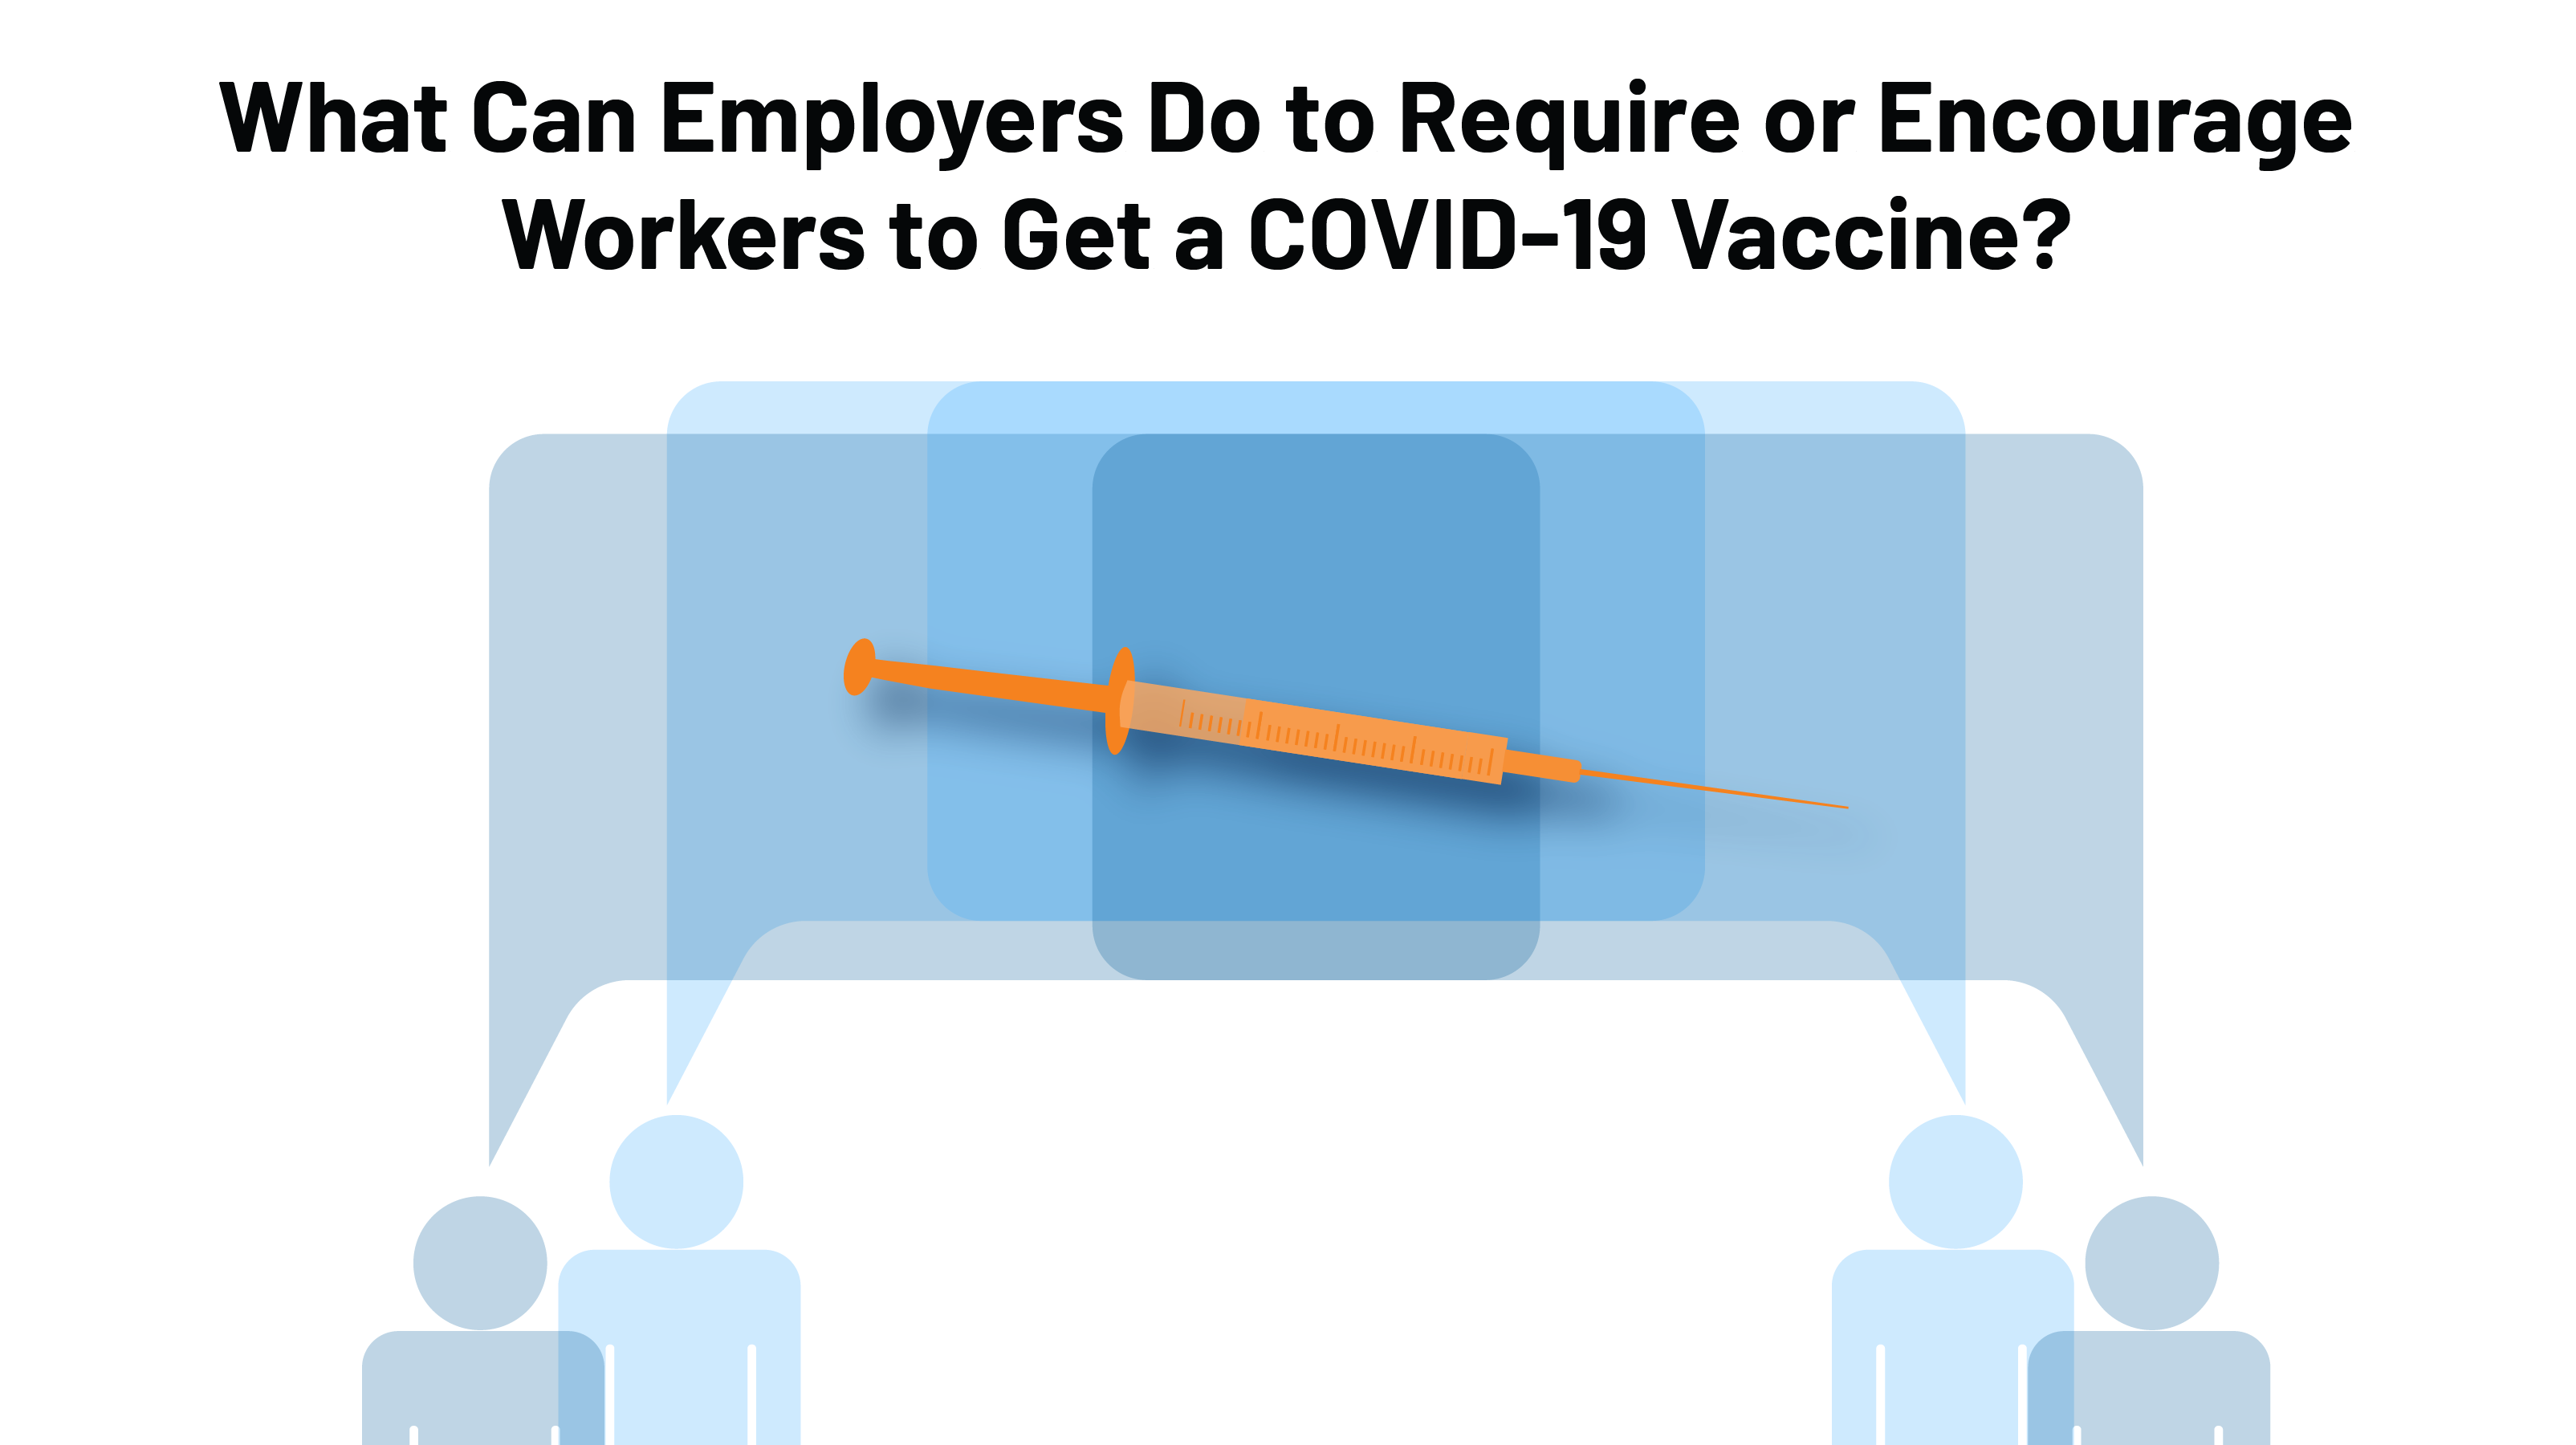 What can employers do to require or encourage workers to receive a COVID-19 vaccine?